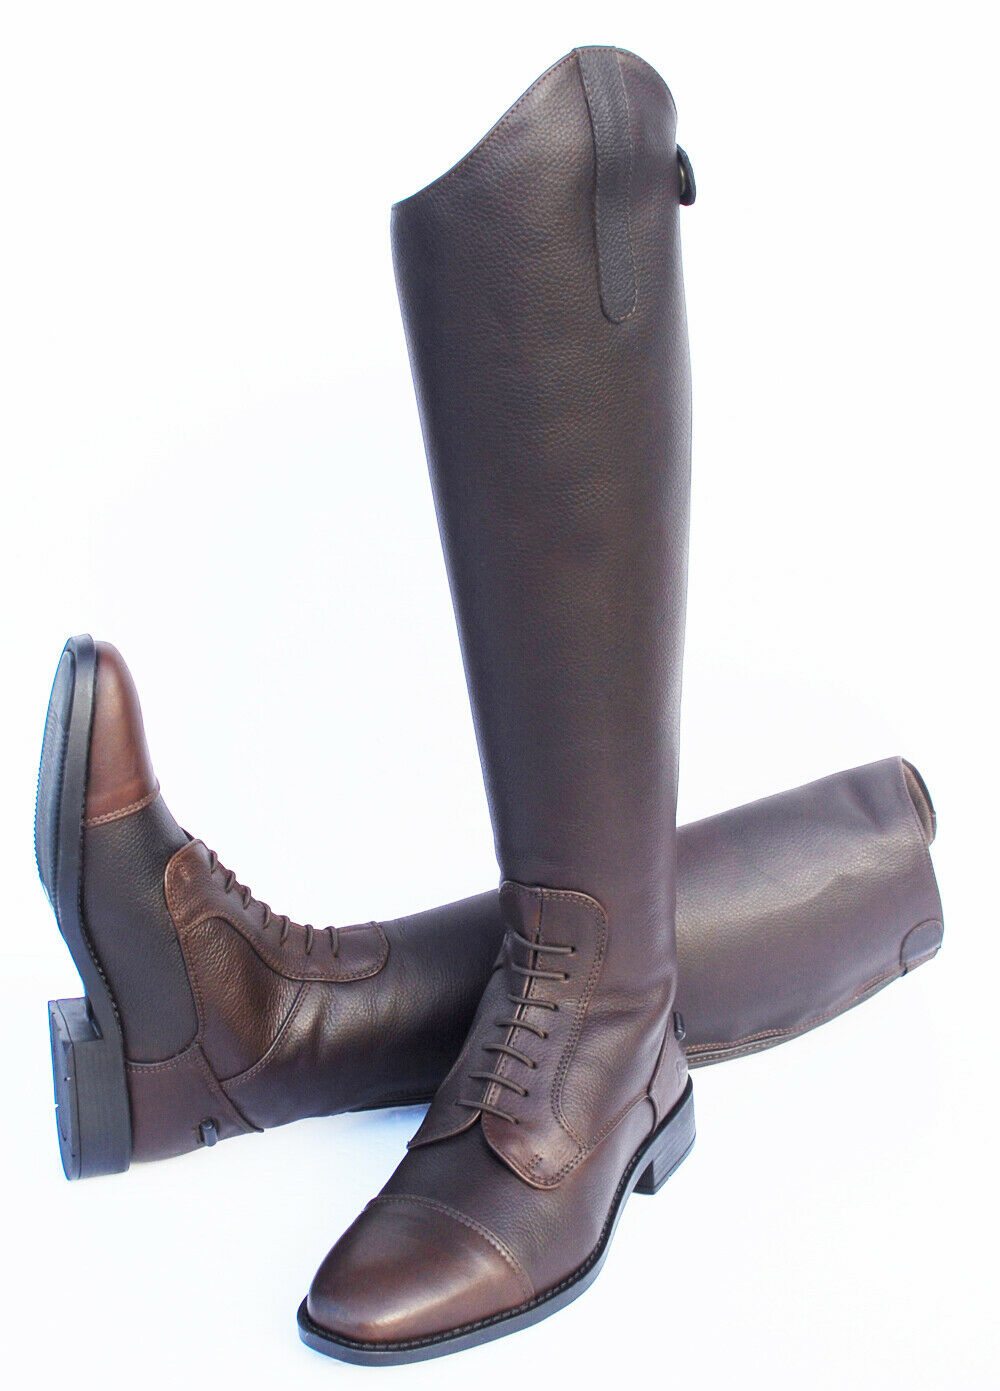 NEW - RhineGold Elite Luxus Leather Long Riding Stiefel-Antique braun -Various